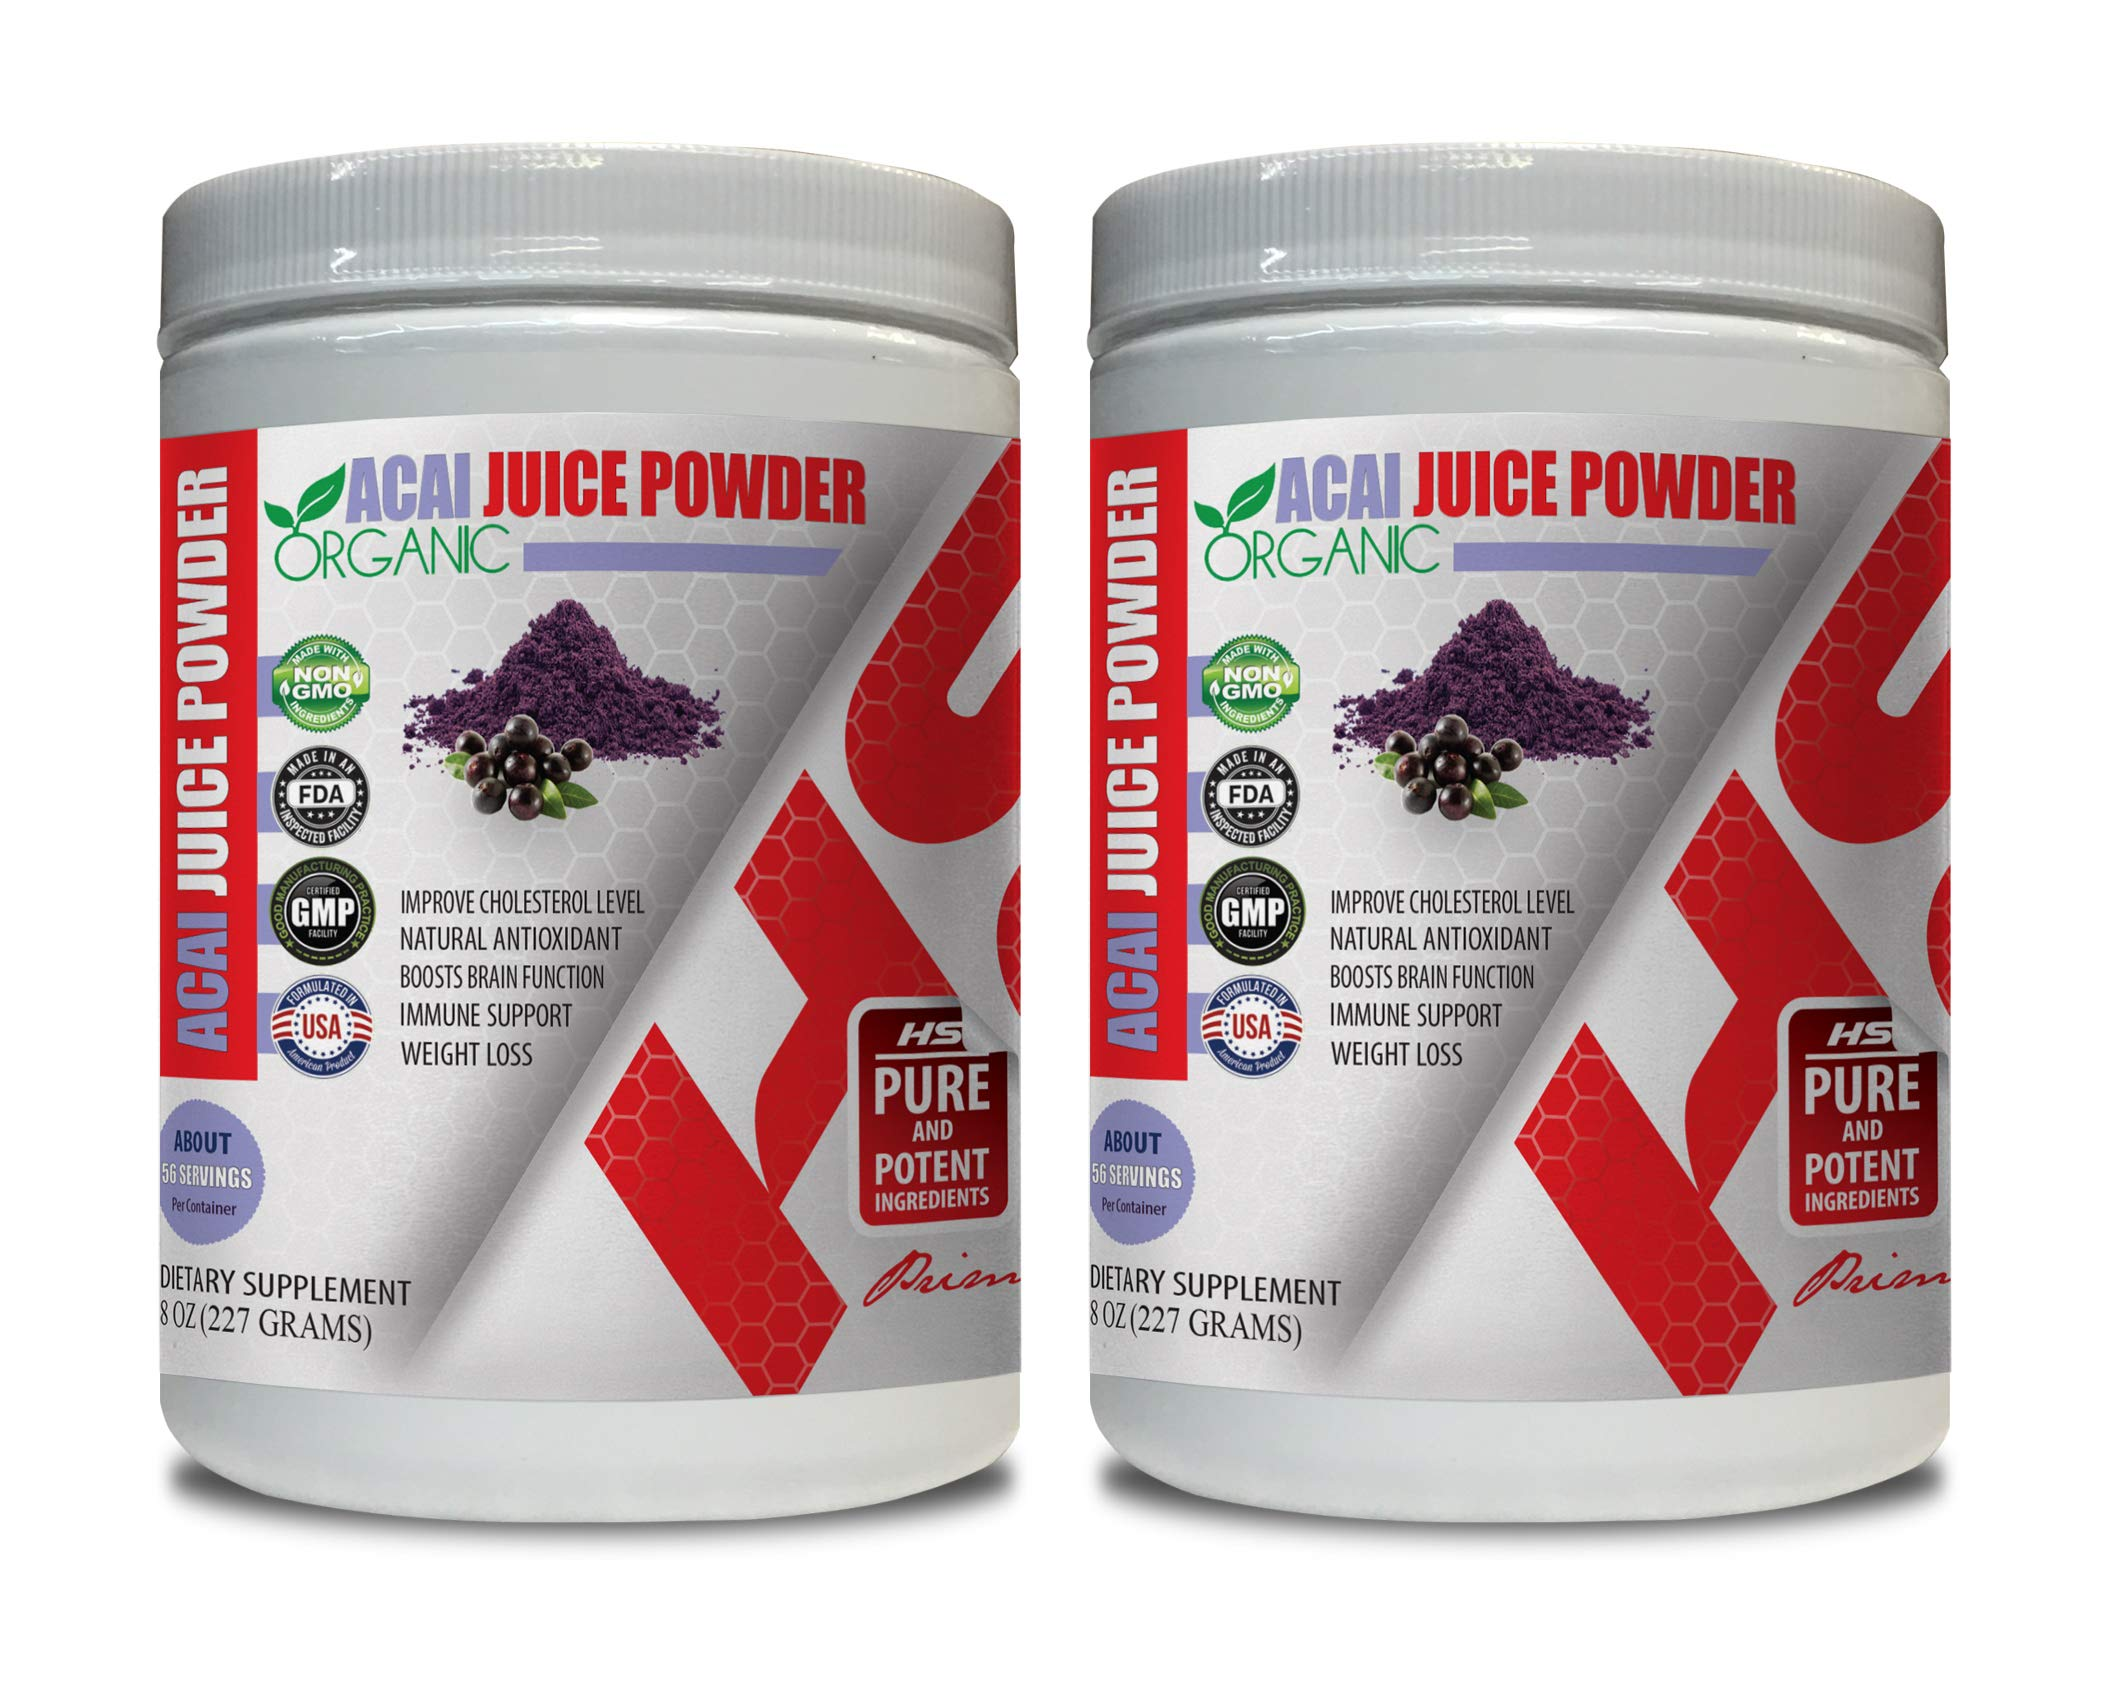 Immune System Support Supplements - ACAI Juice Powder Organic - Natural ANTIOXIDANT - acai Supplement Organic - 2 Cans 16 OZ (130 Servings)